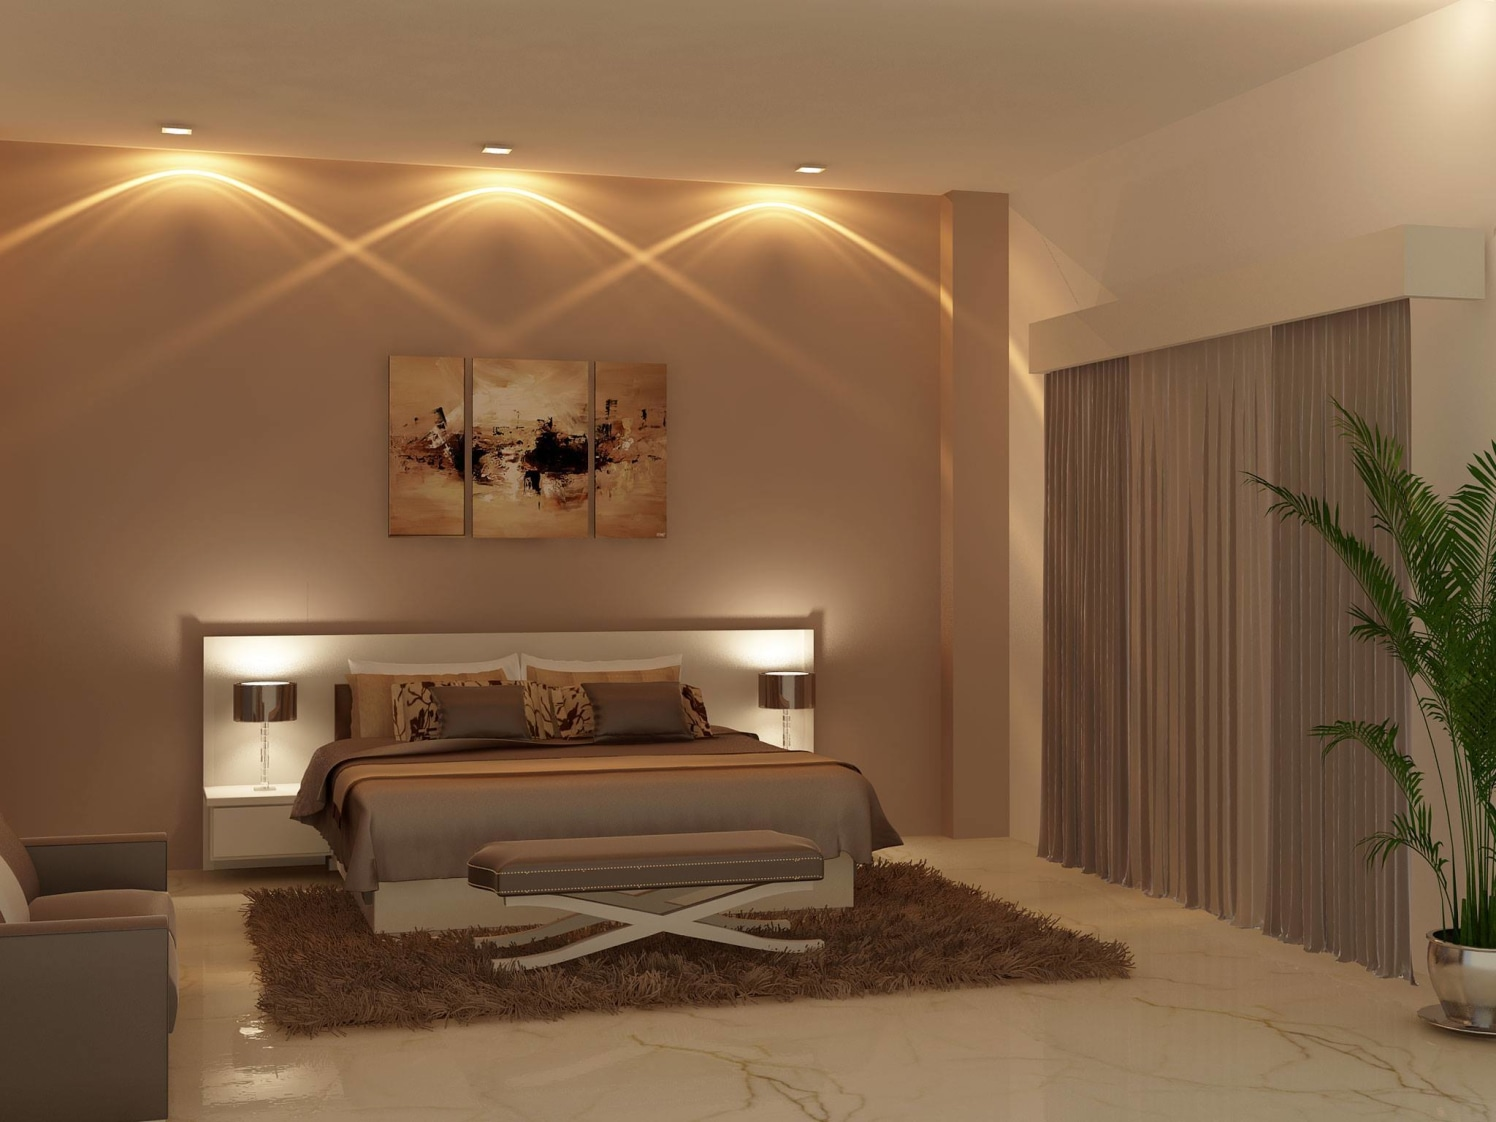 Cream Themed Bedroom With Brown Soft Carpet by HOC Designarch Bedroom Contemporary | Interior Design Photos & Ideas